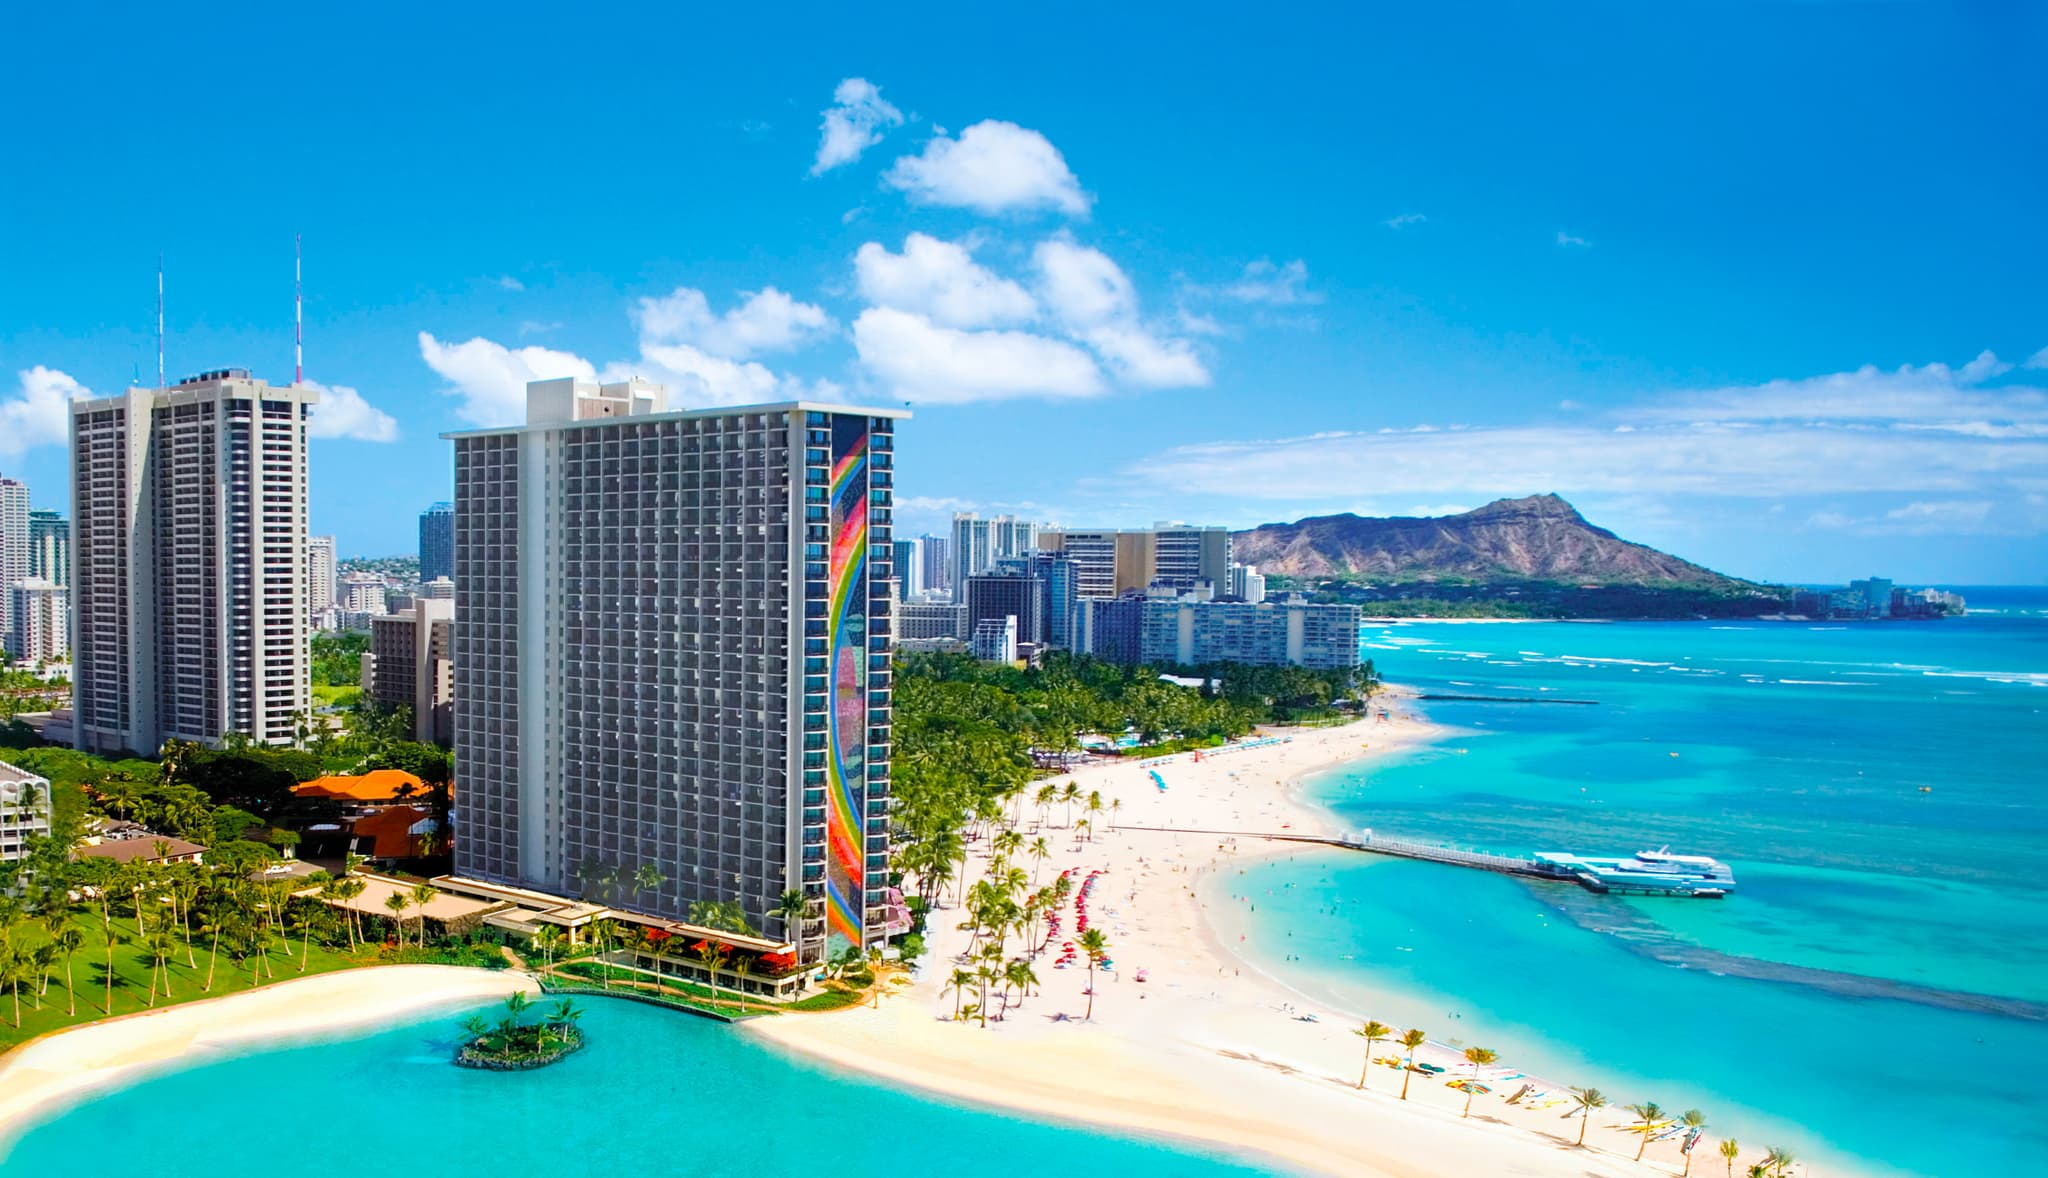 hilton hawaiian village waikiki beach photo gallery. Black Bedroom Furniture Sets. Home Design Ideas